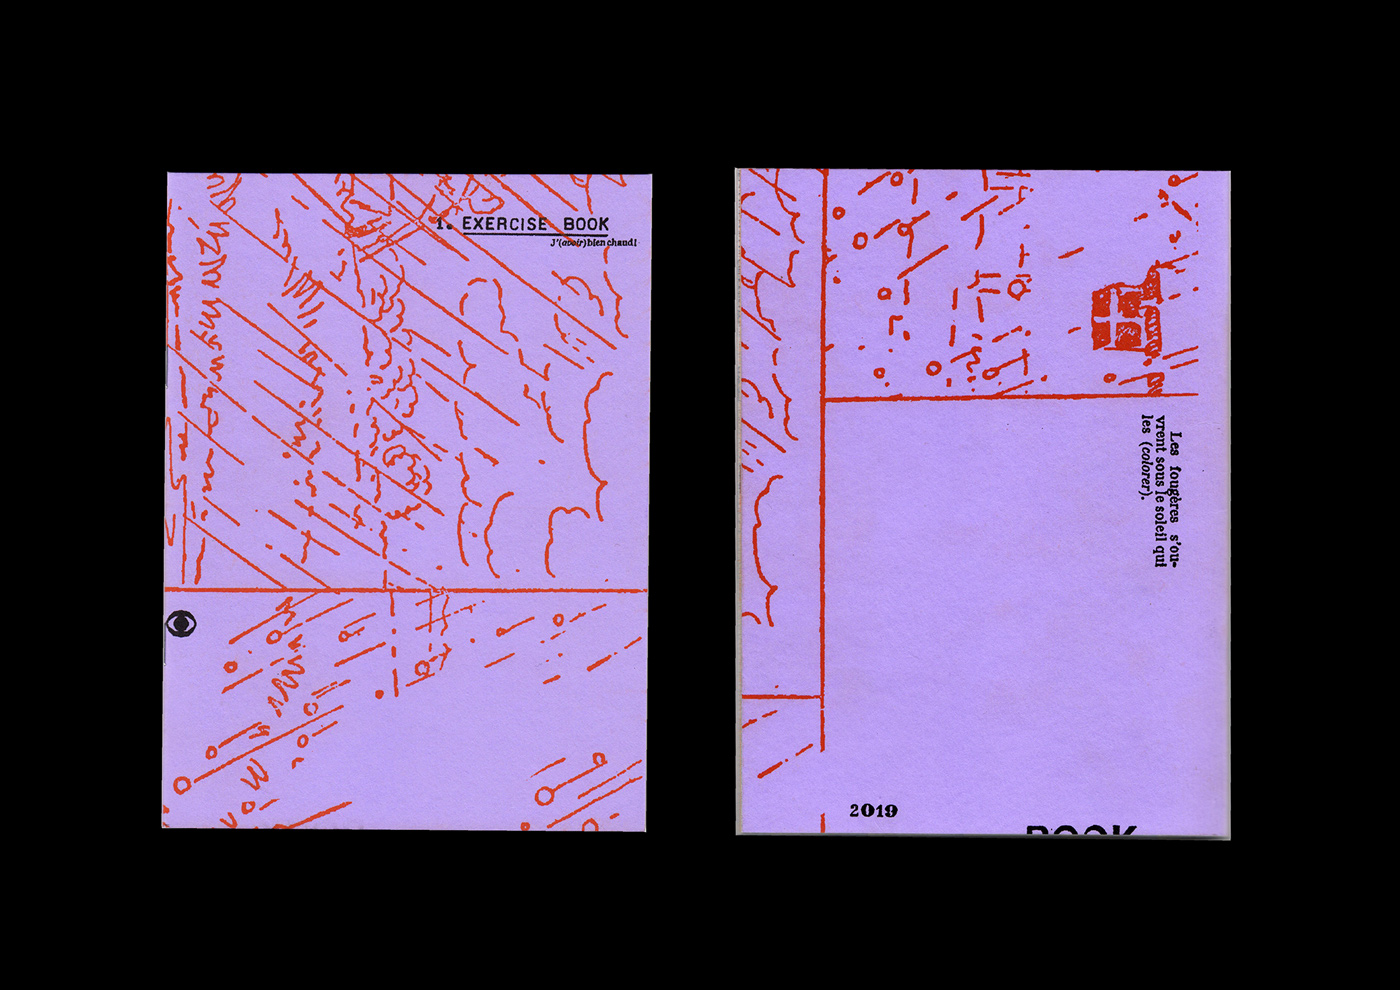 01 collide24 Riso Sur Mer - Riso sur Mer is a experimental riso-printing collective, collaborating across continents